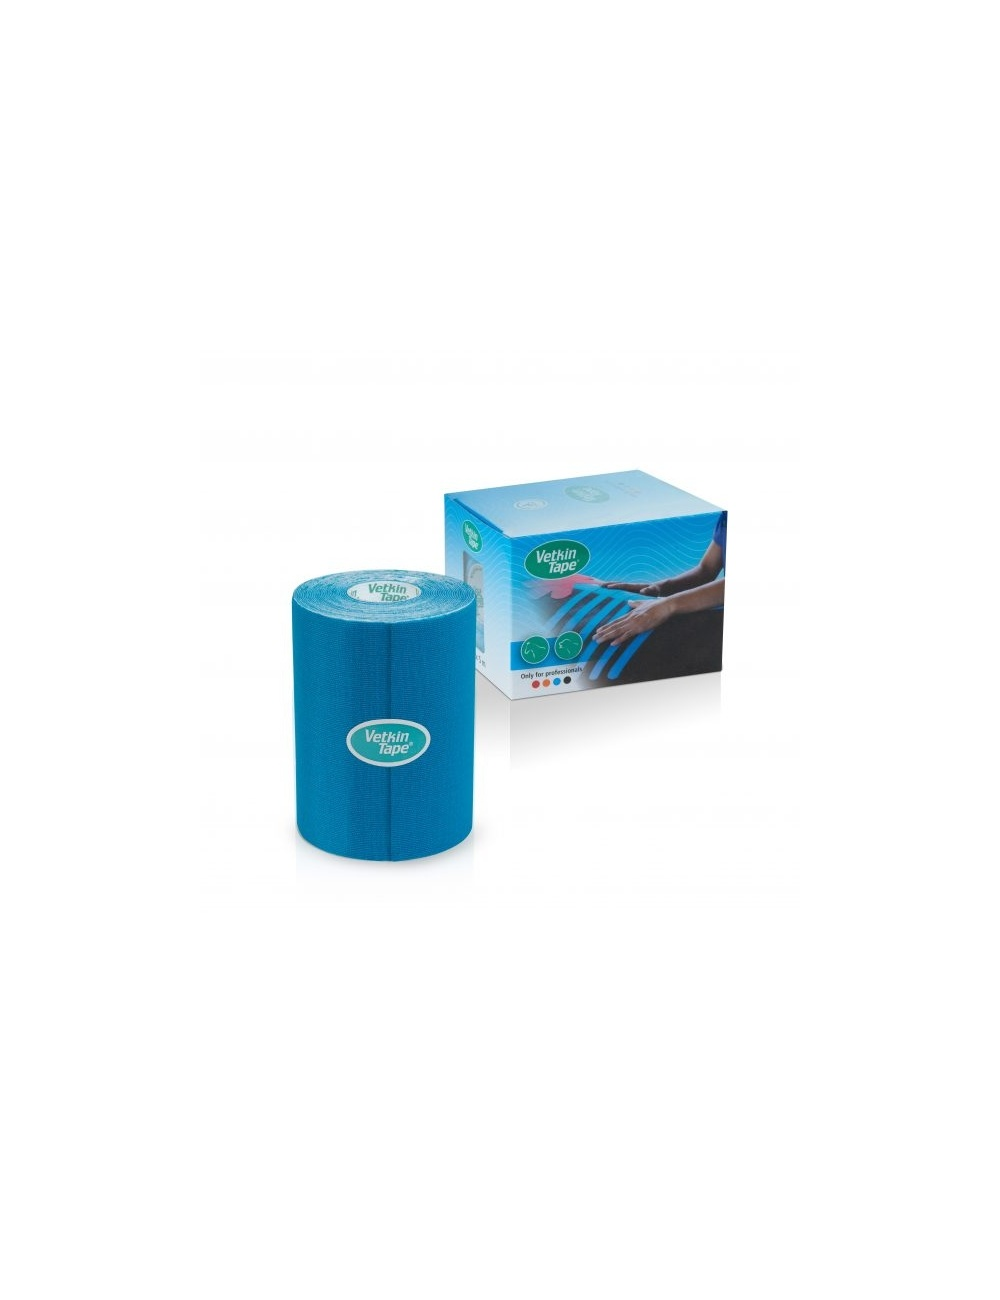 "VetkinTape Kinesiology Tape 4"" Roll and Box Blue"